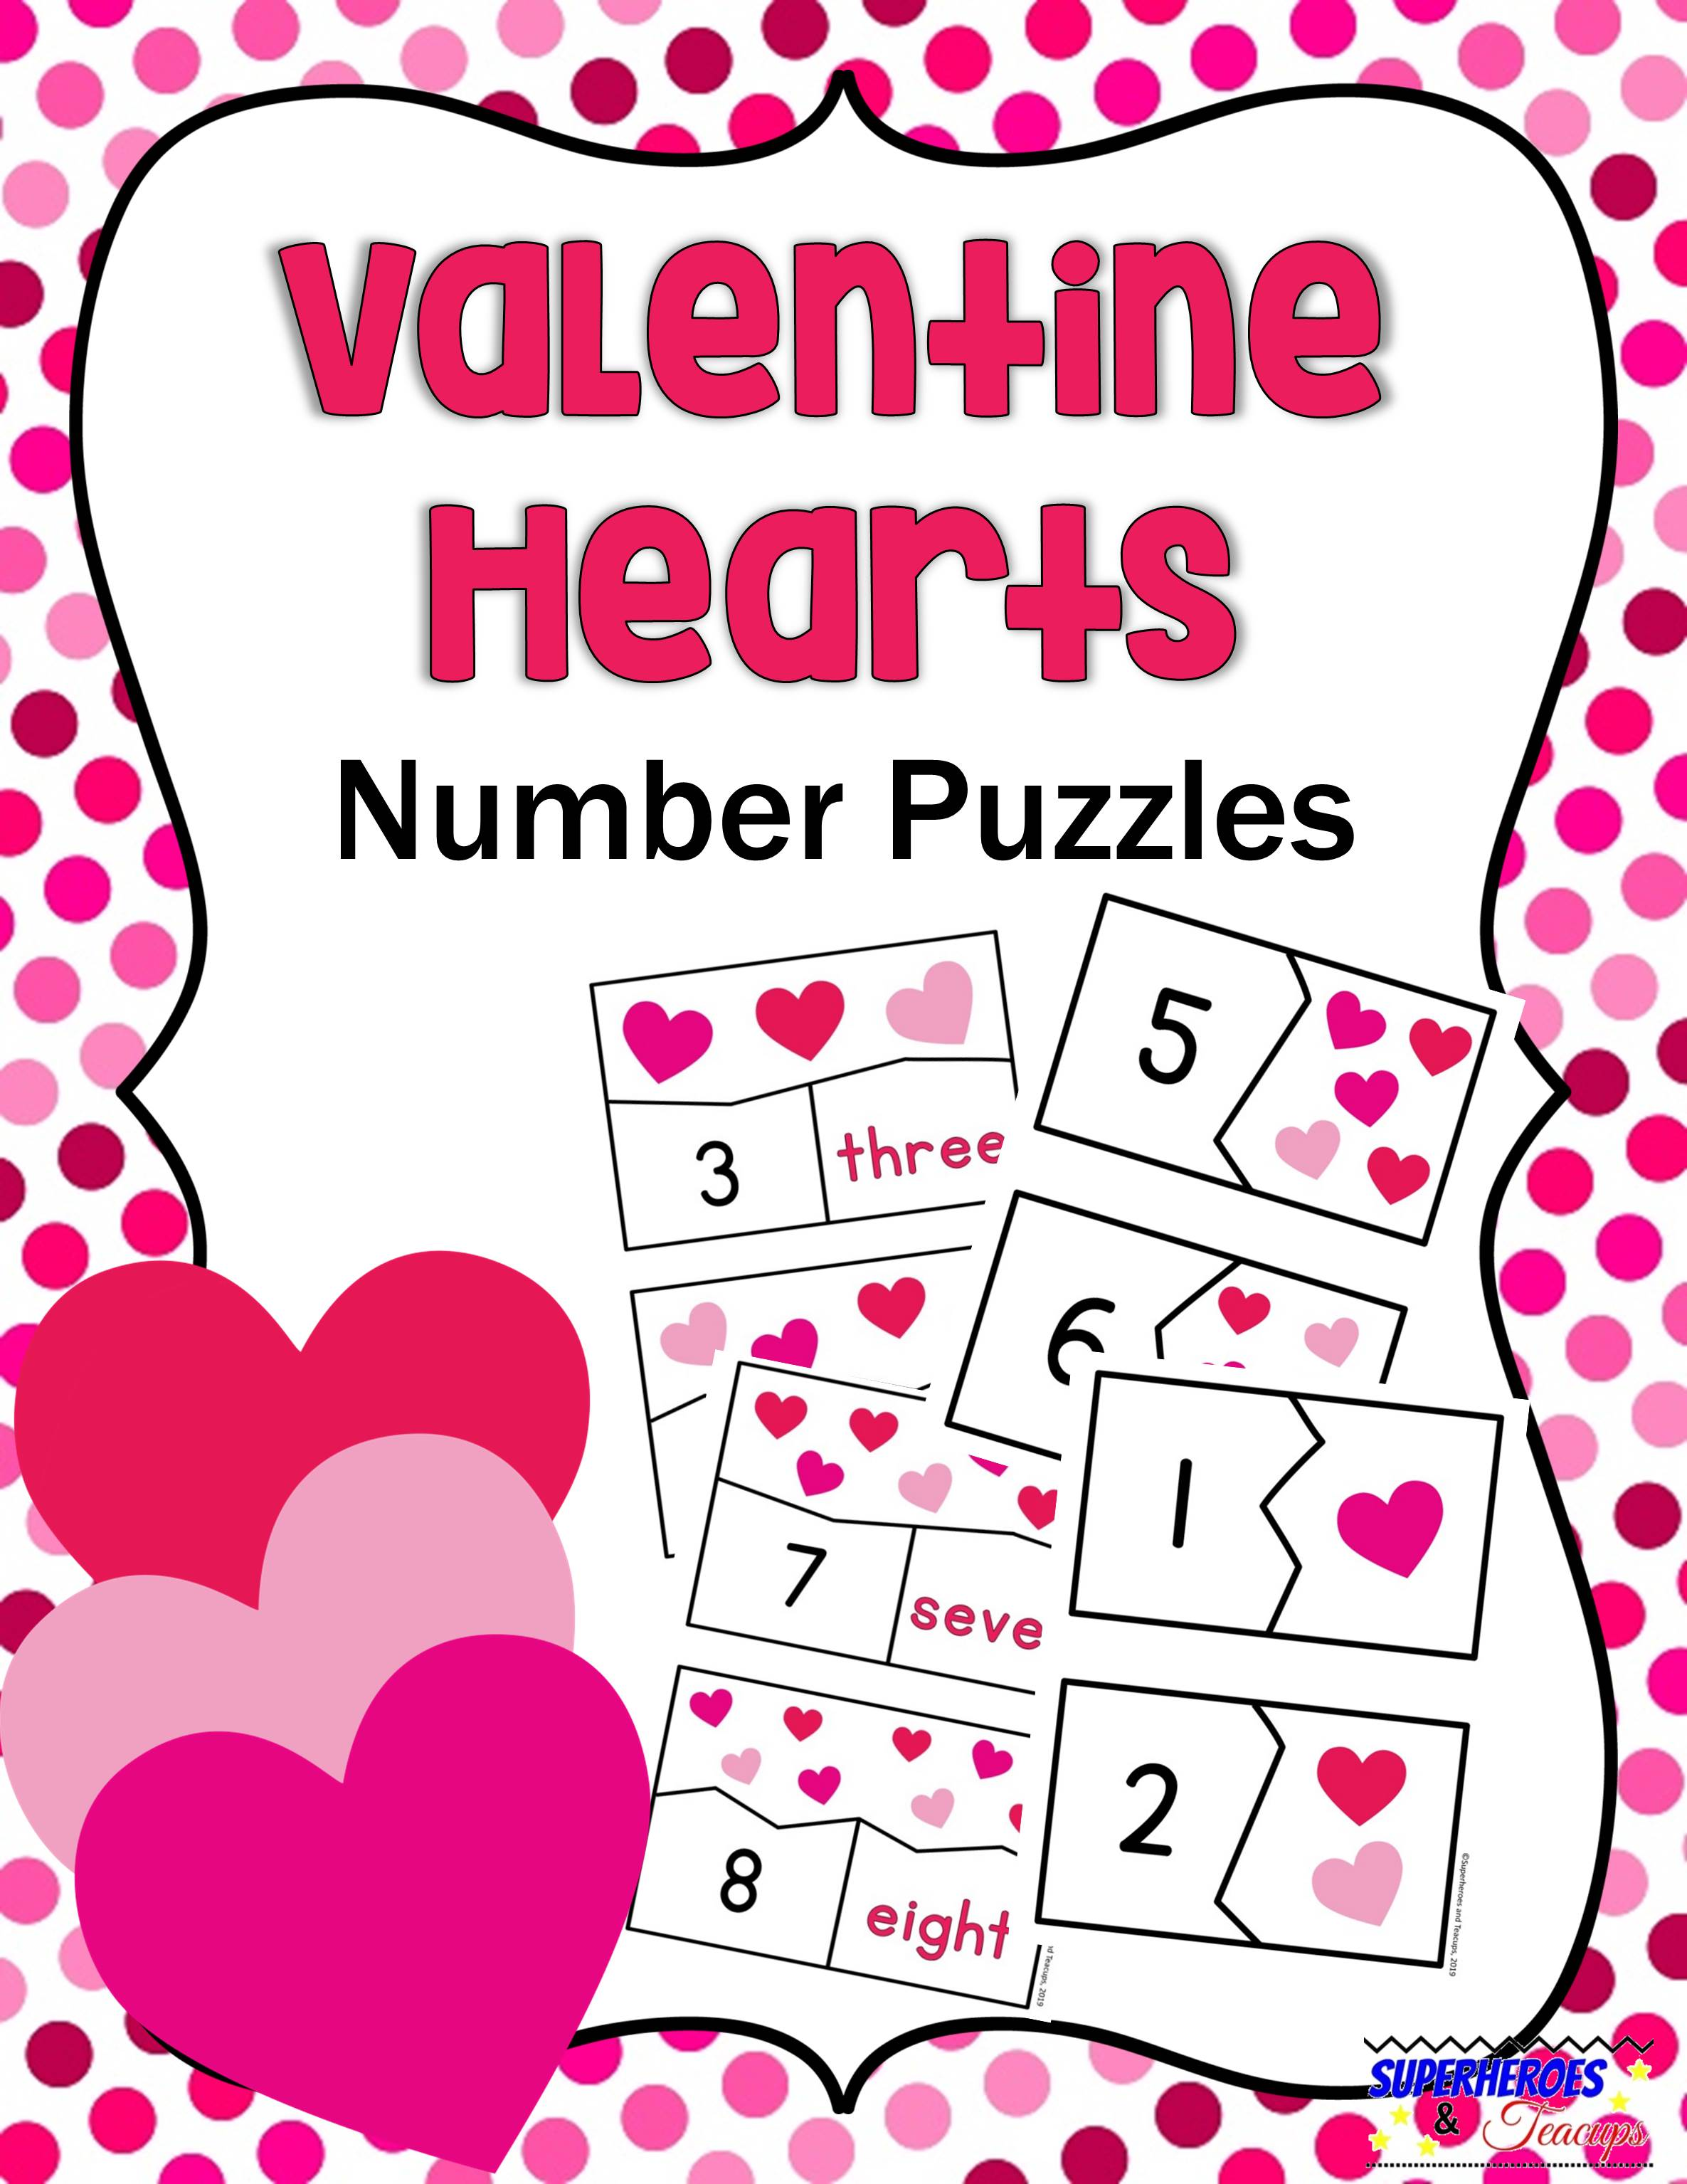 Use these free printable Valentine hearts number puzzles with your child to practice counting and numeral/number word recognition. #mathprintables #valentinesdayprintables #valentinesdaymath #freeprintables #superheroesandteacups